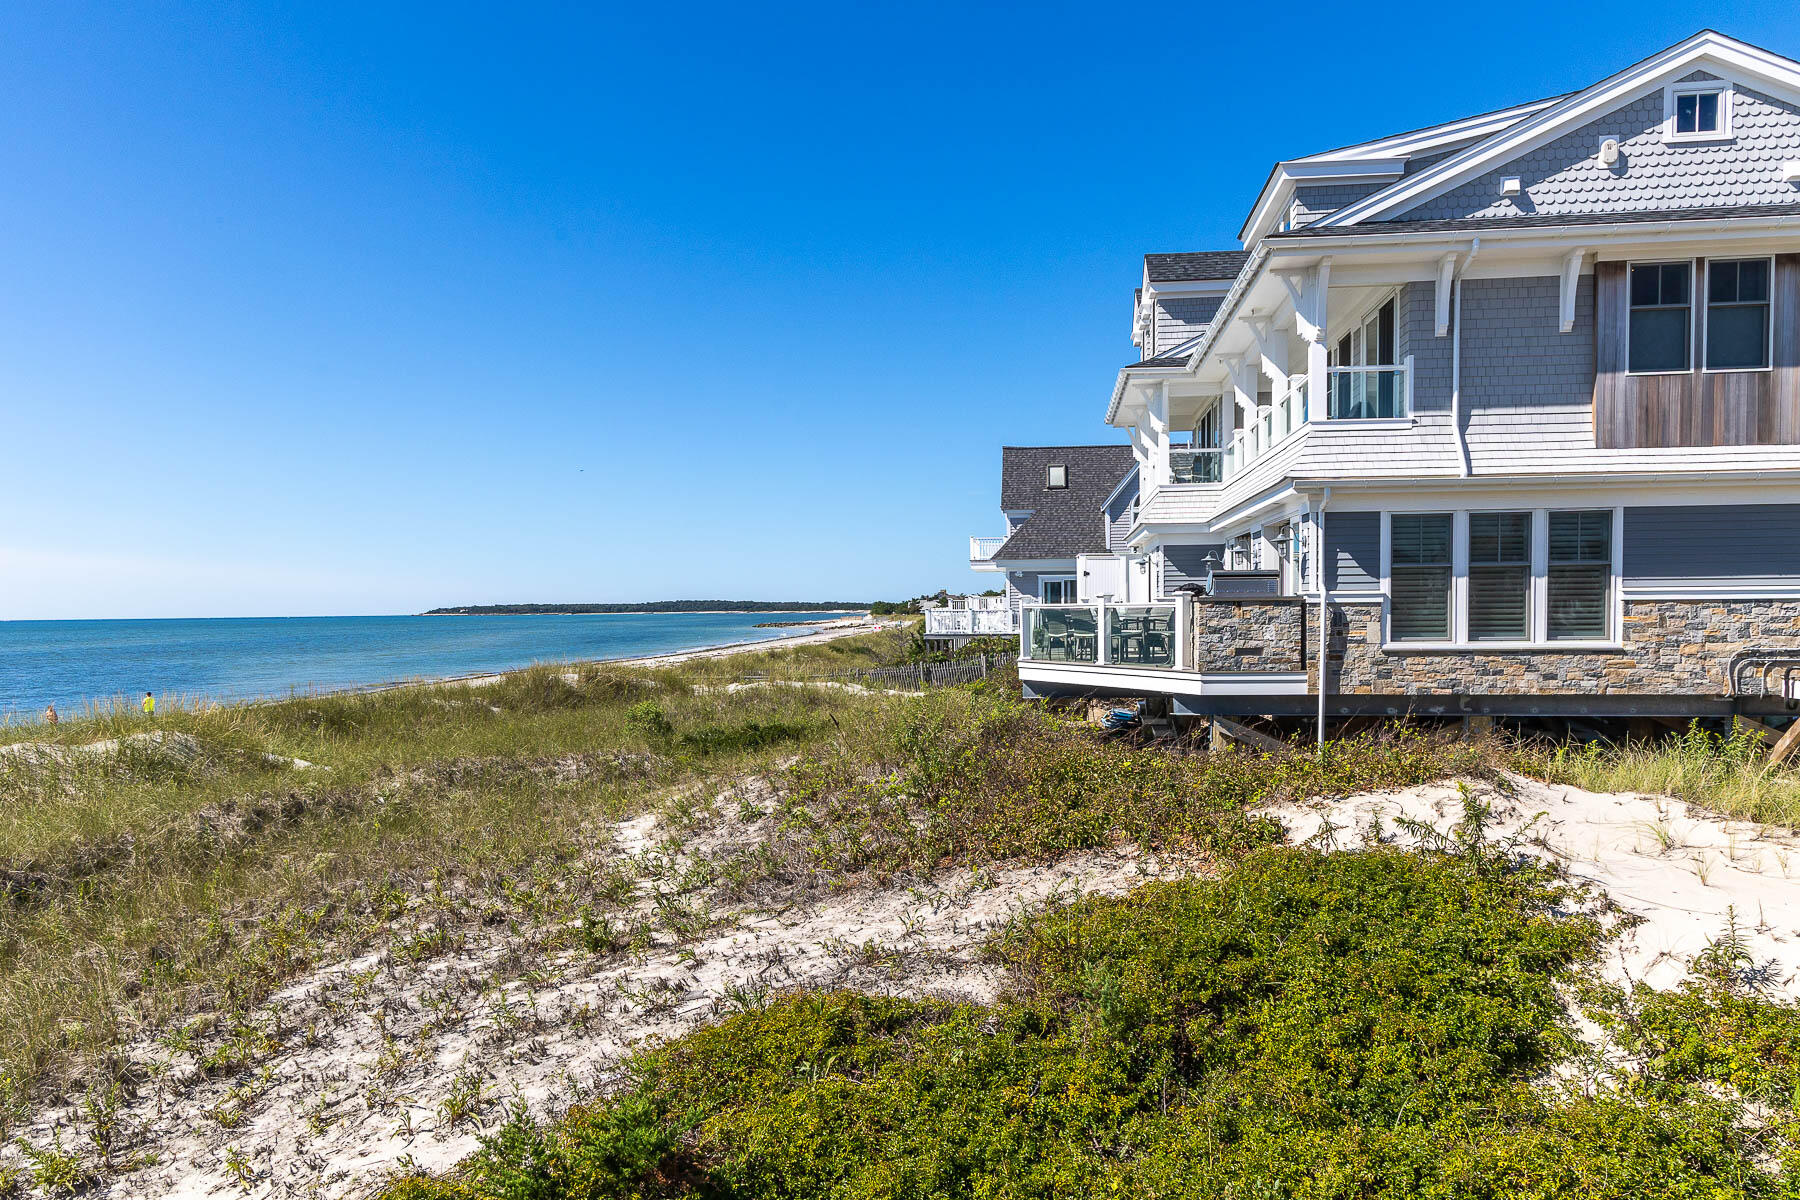 25 Powers Lane, West Yarmouth MA, 02673 details